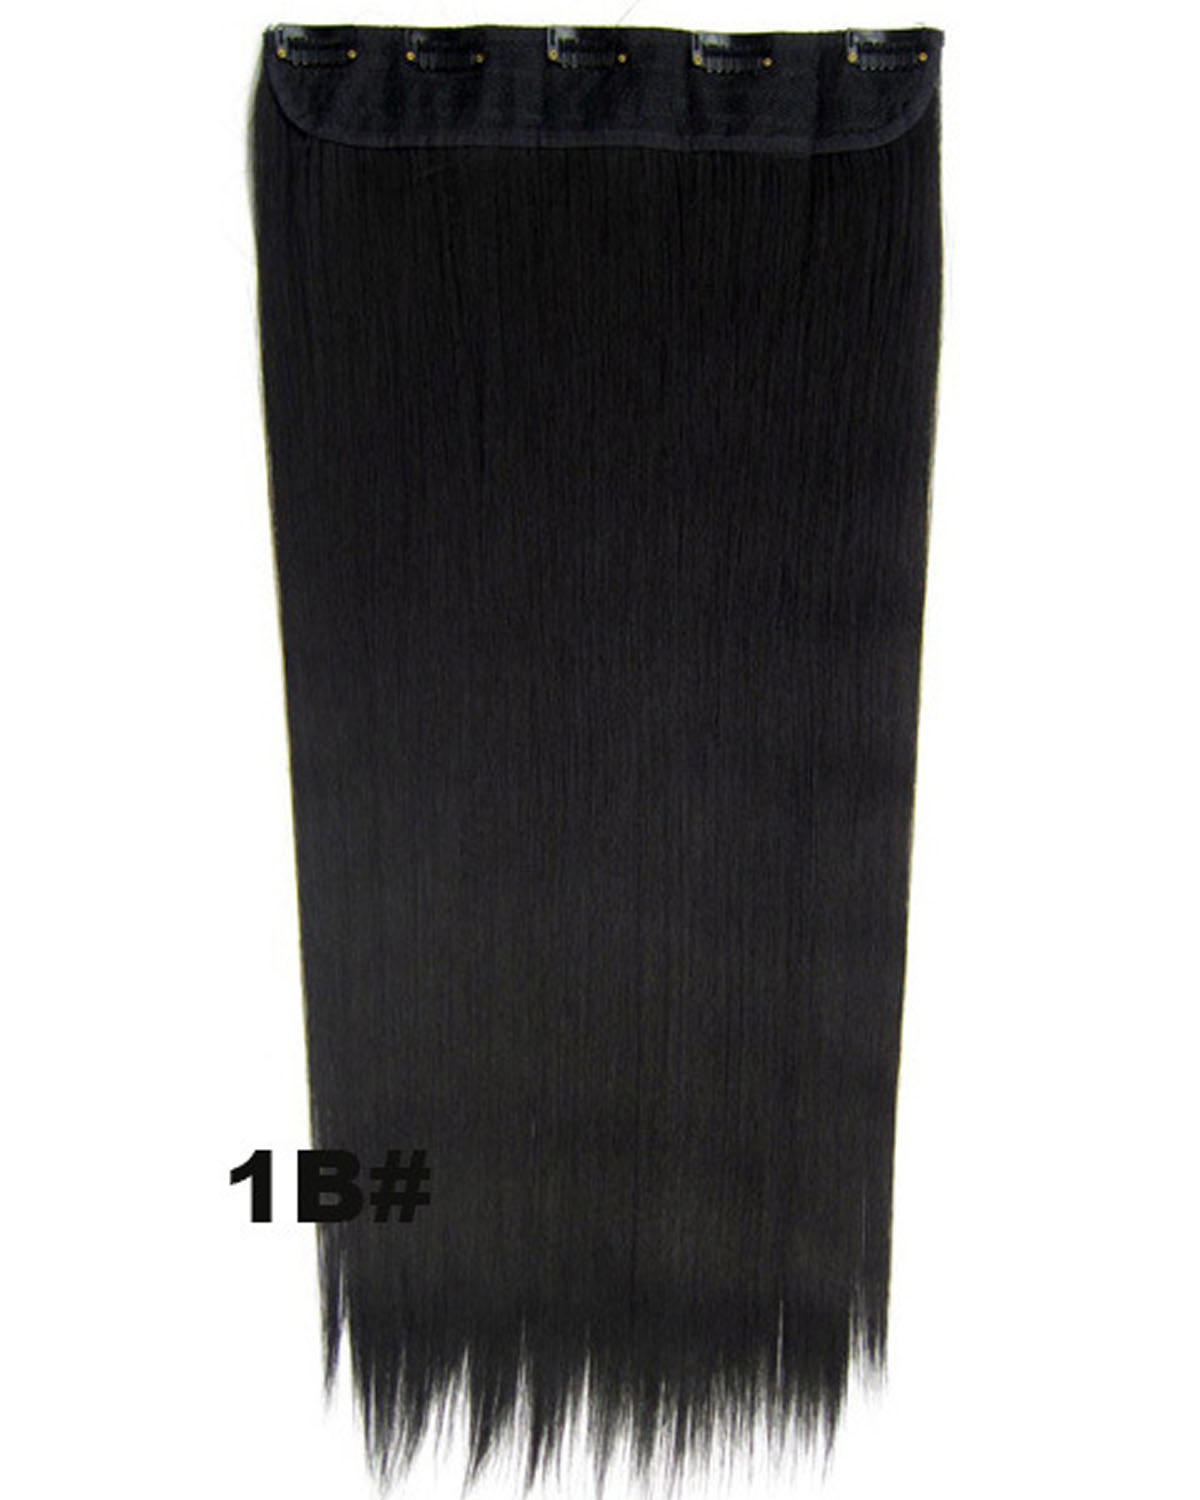 24 Inch Female  Delicate Long and Straight One Piece 5 Clips Clip in Synthetic Hair Extension 1B#